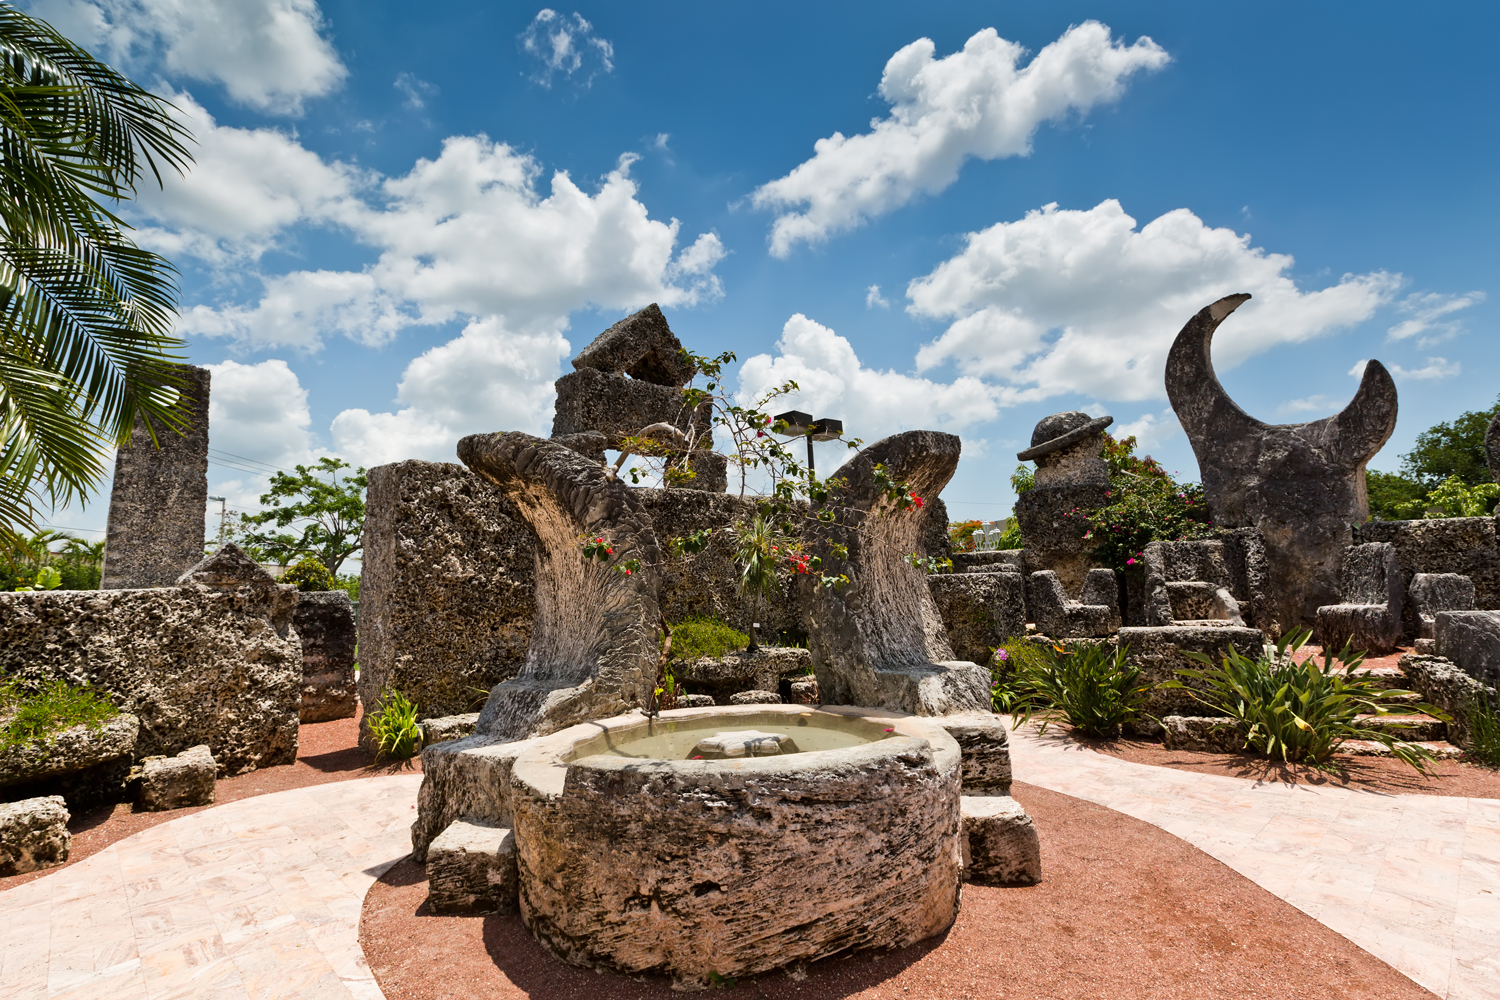 Coral Castle- A stone structure created by an eccentric Latvian emigrant in the United States Edward Leedskalnin